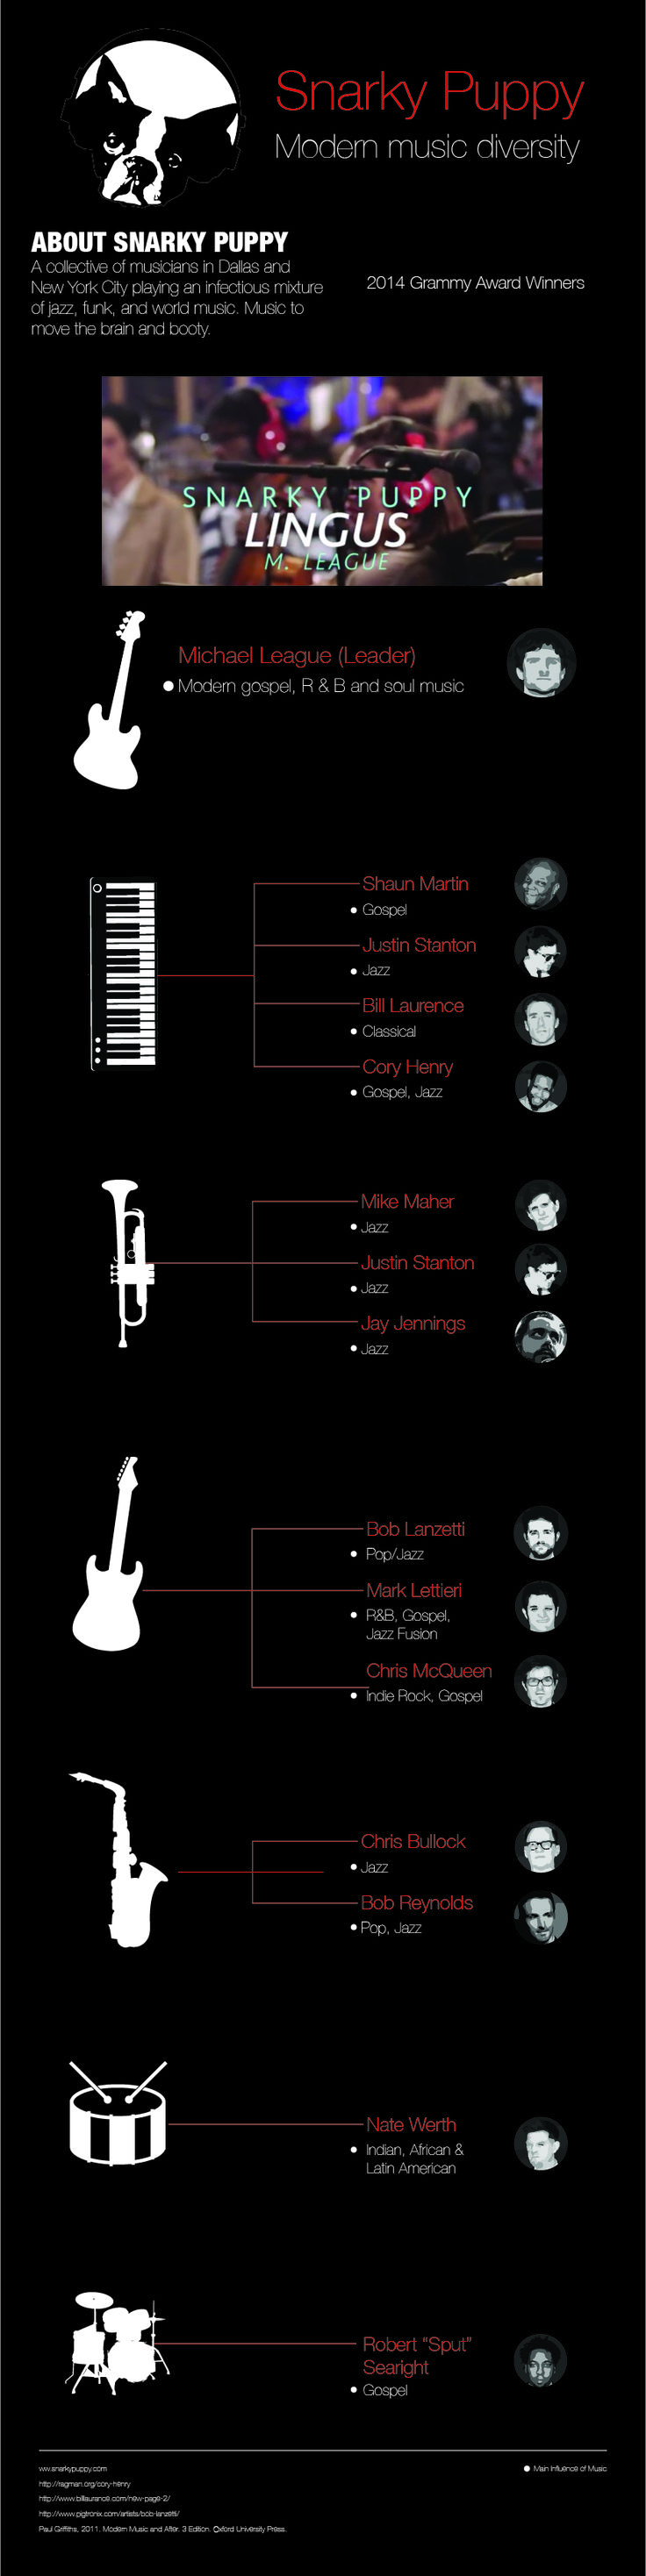 An Infographic I'd to do for varsity and I chose my favourite band Snarky Puppy.